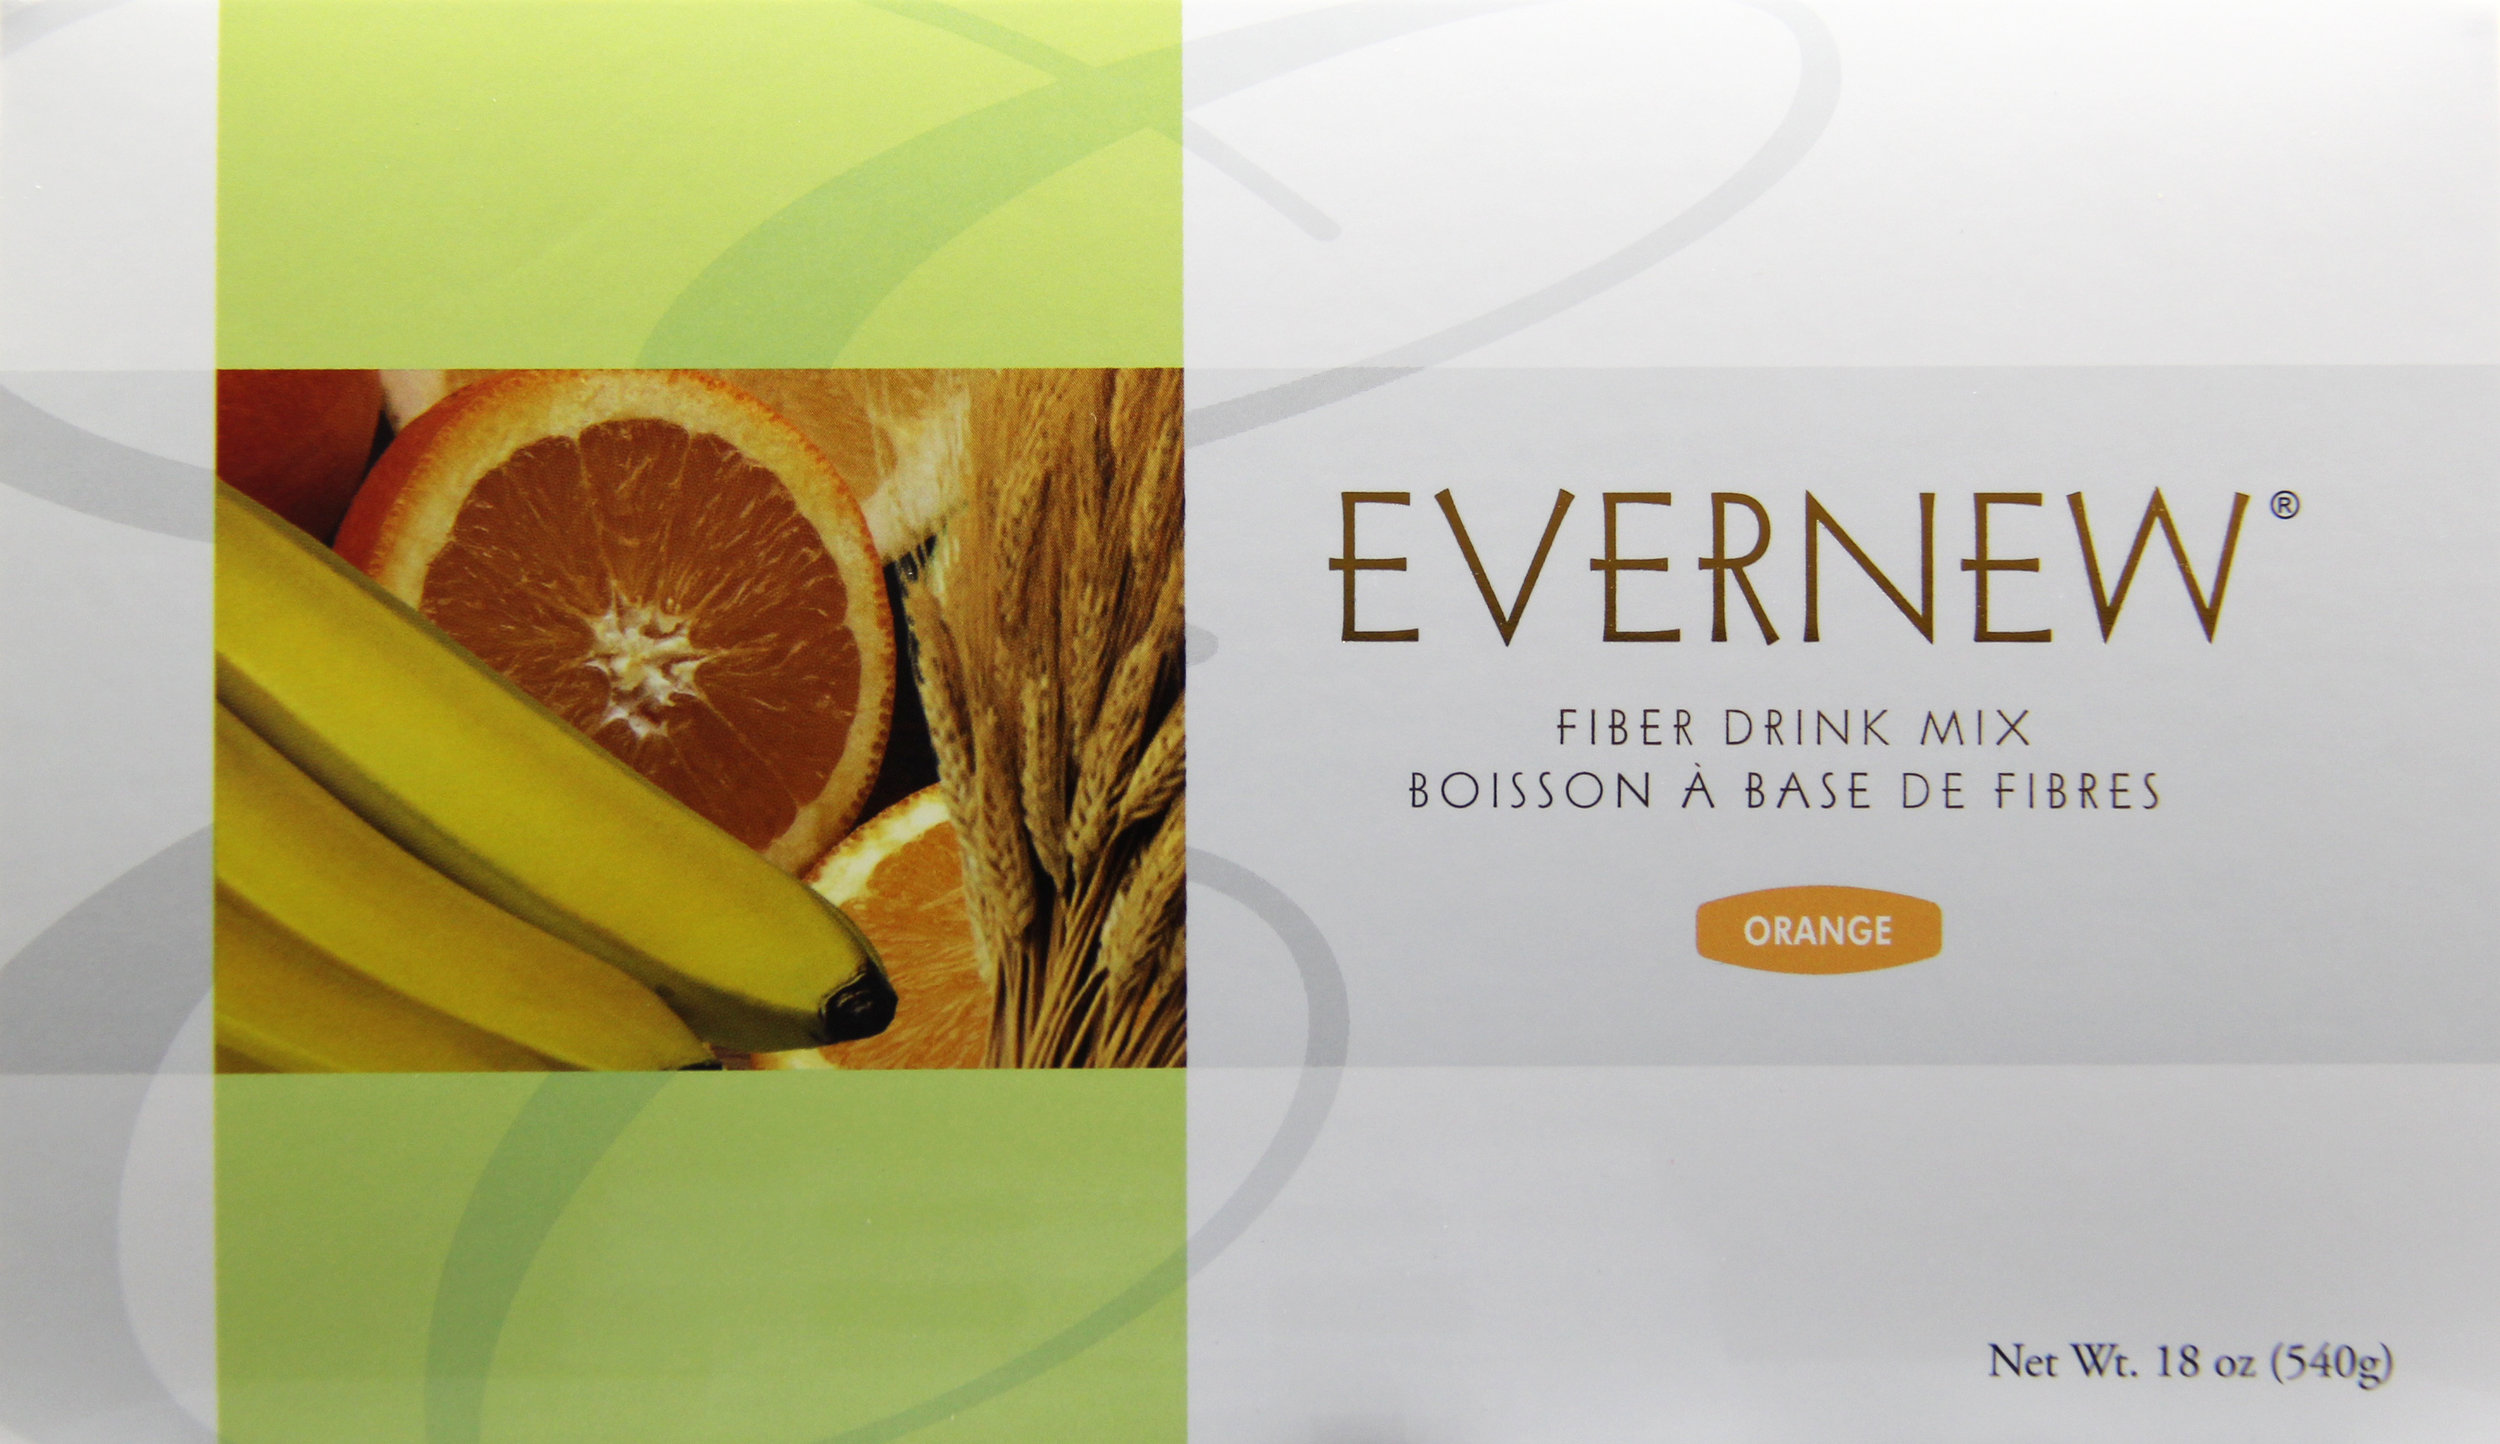 evernew orange - A refreshing and tasty fiber-rich beverage.One packet of Evernew or Evernew Orange provides 3g of soluble fiber from psyllium husk.Featured Ingredients: Psyllium Husk, Orange, Oat Fiber